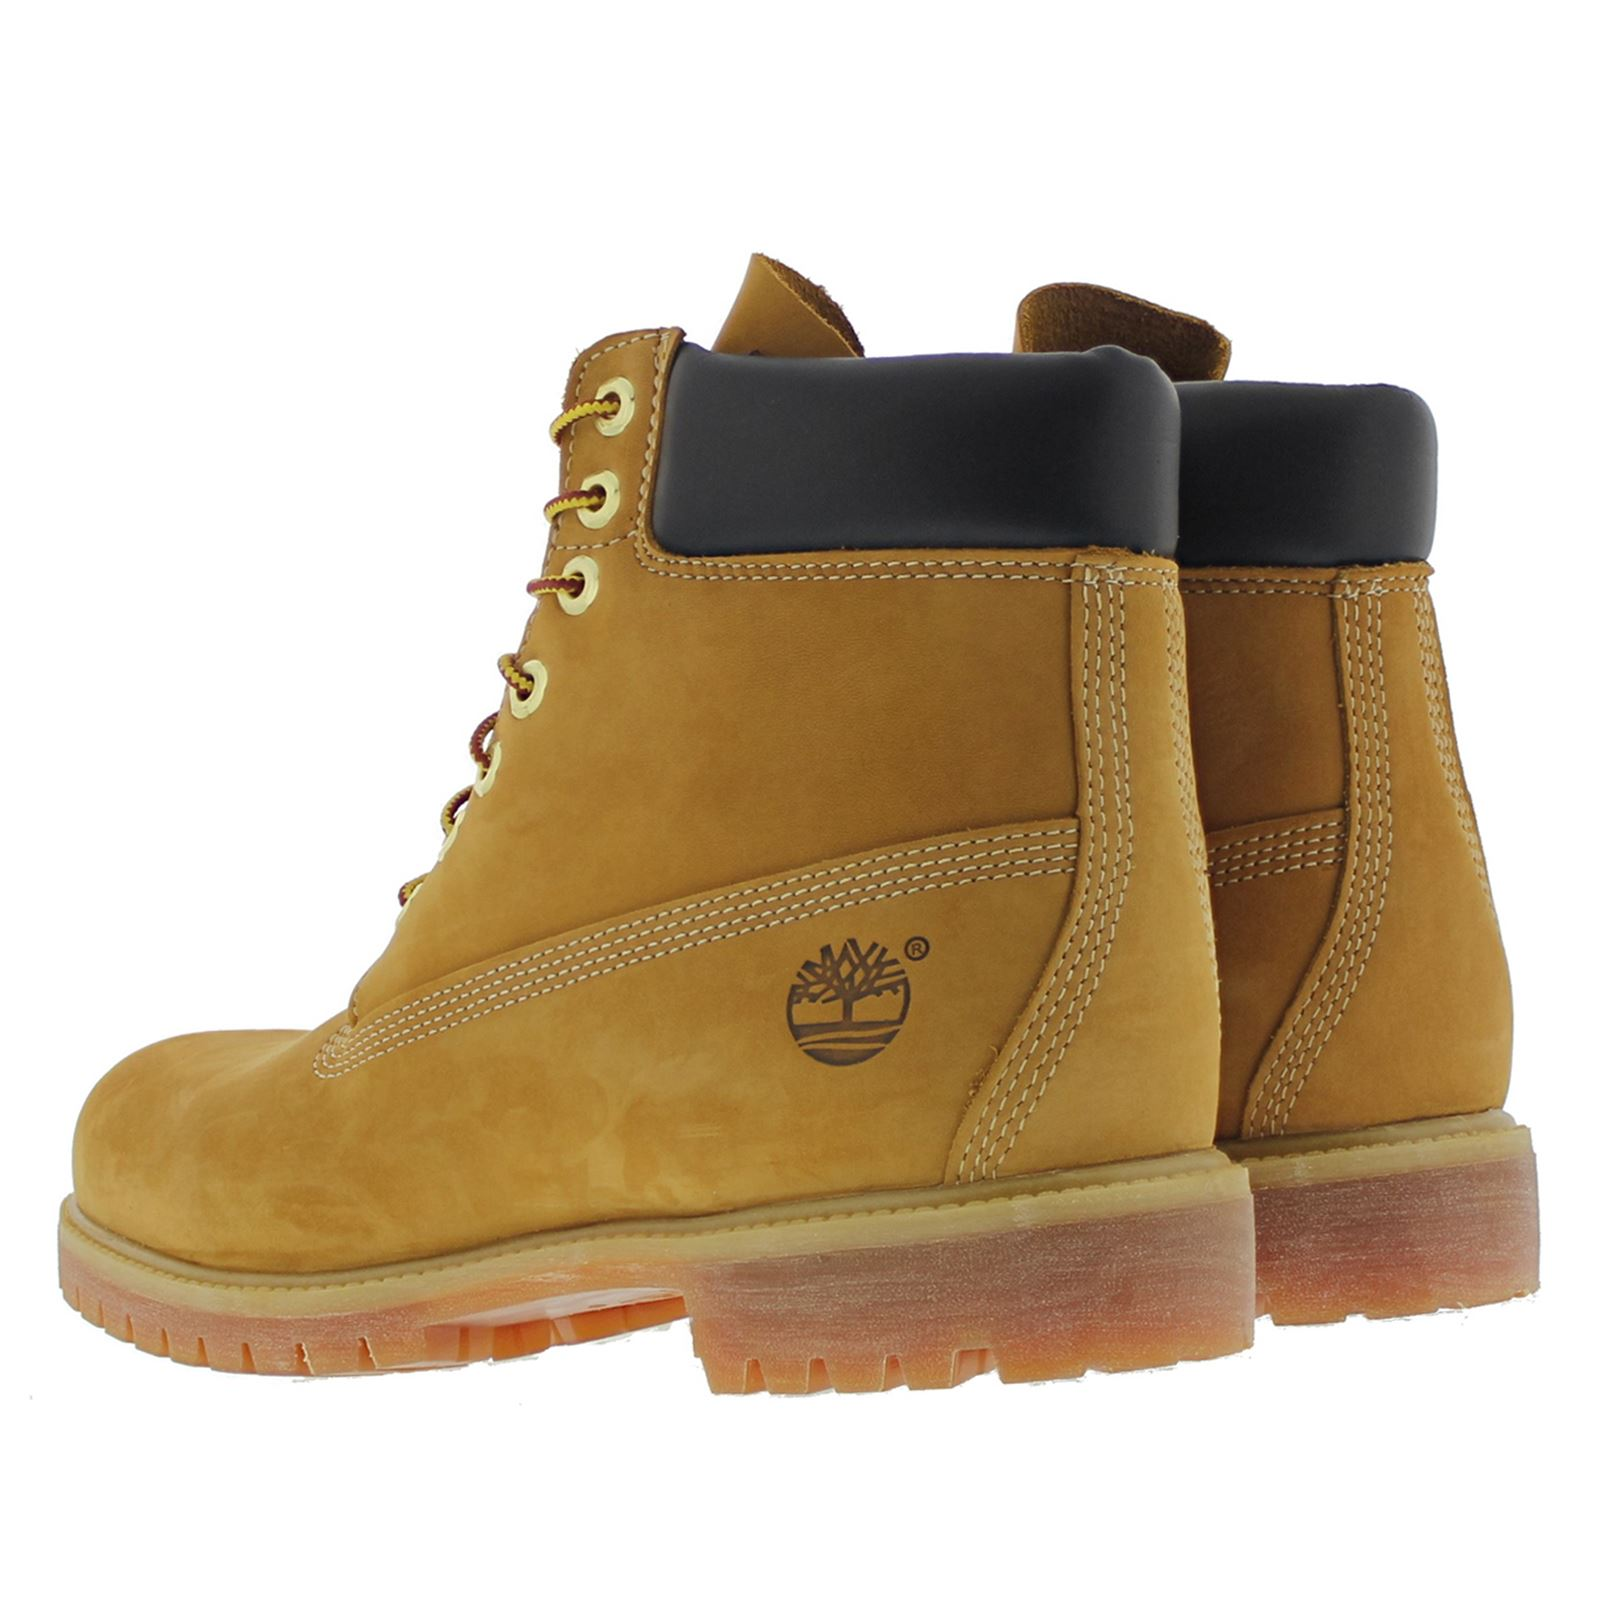 477f4bcb7cb Timberland Icon 6-inch Premium Leather Mens Wide Fitting Boots